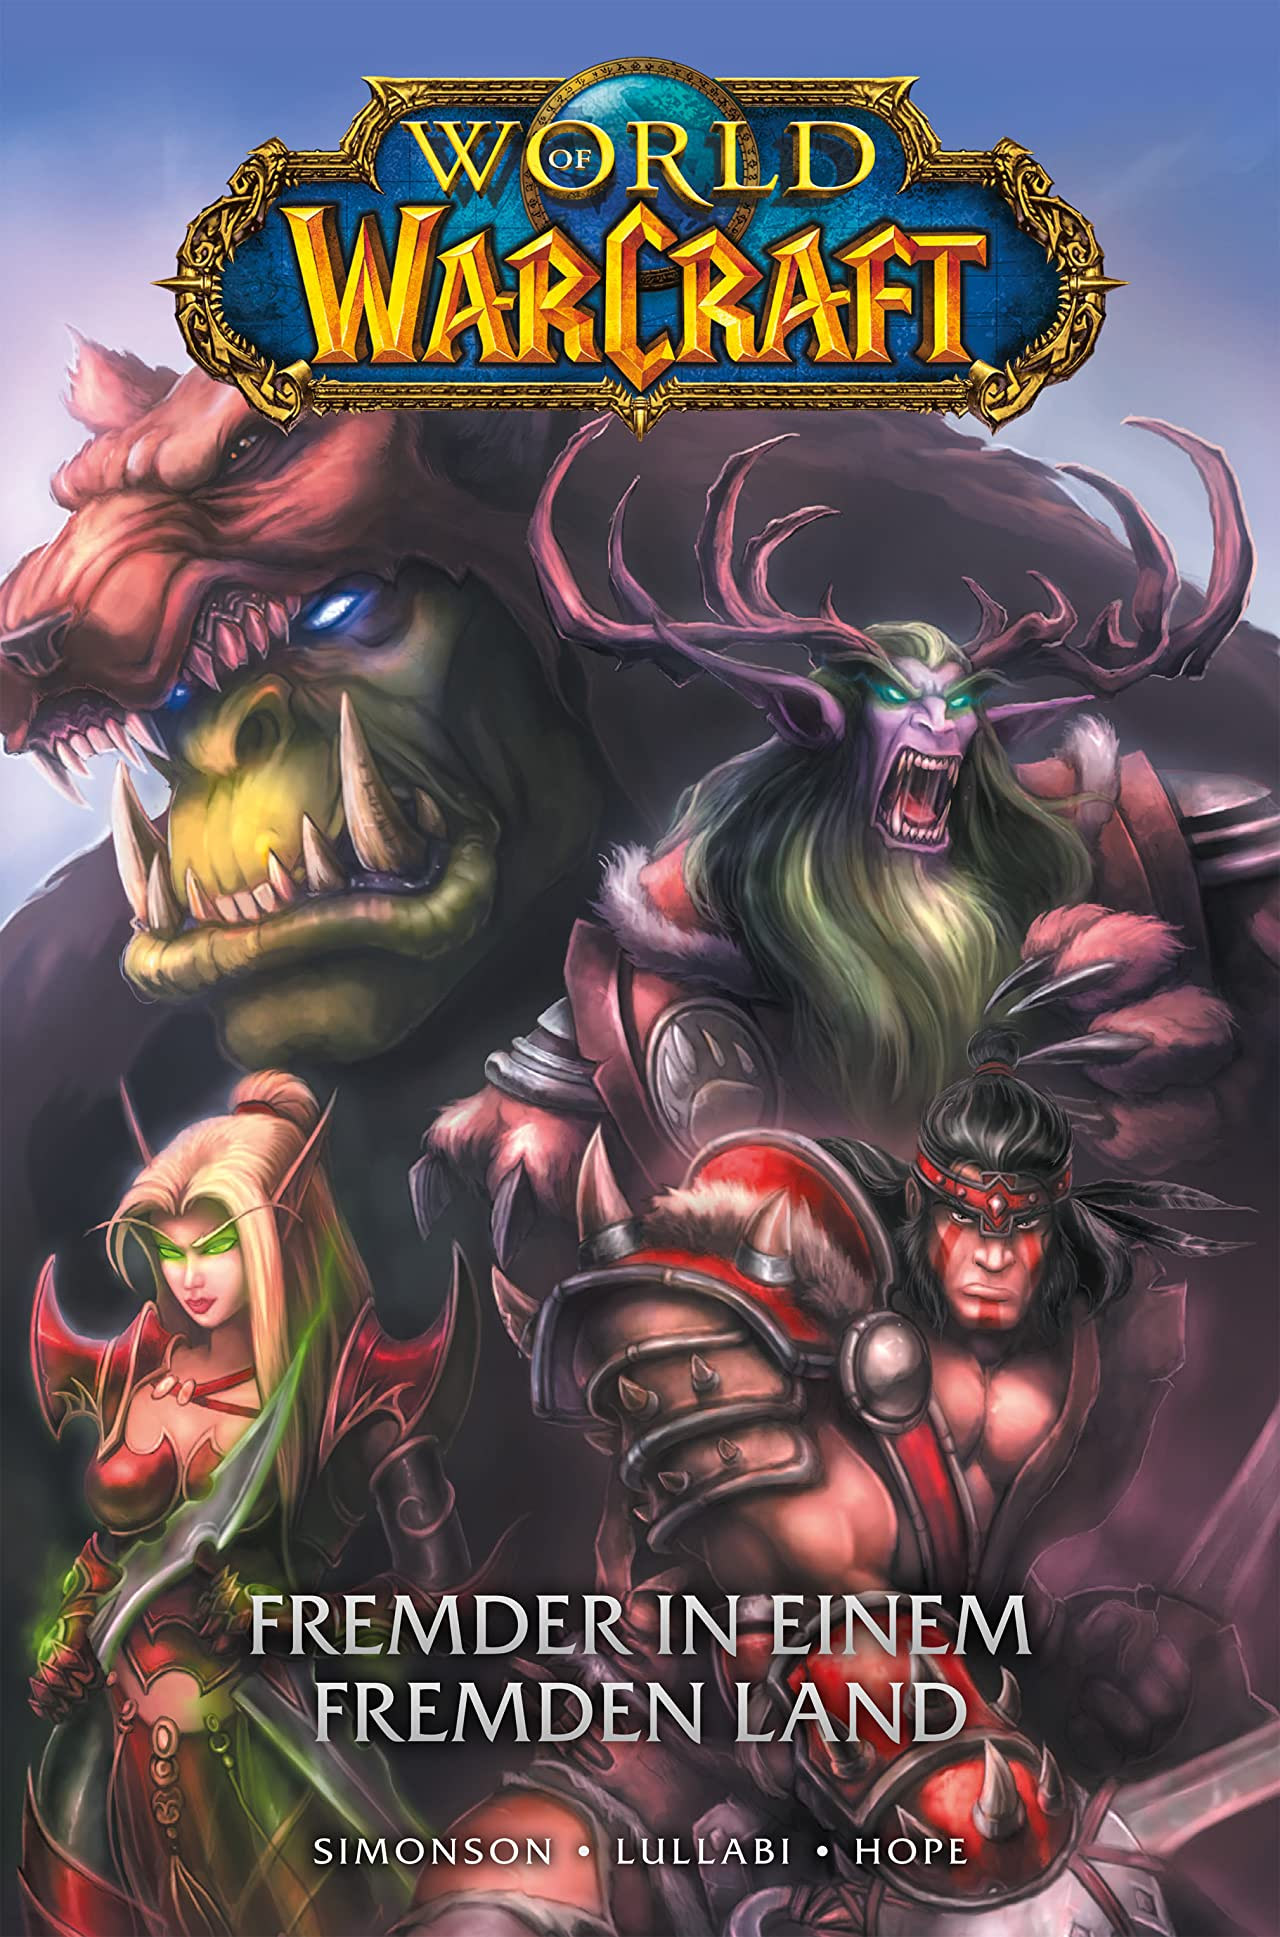 World of Warcraft Vol. 1: Fremder in einem fremden Land